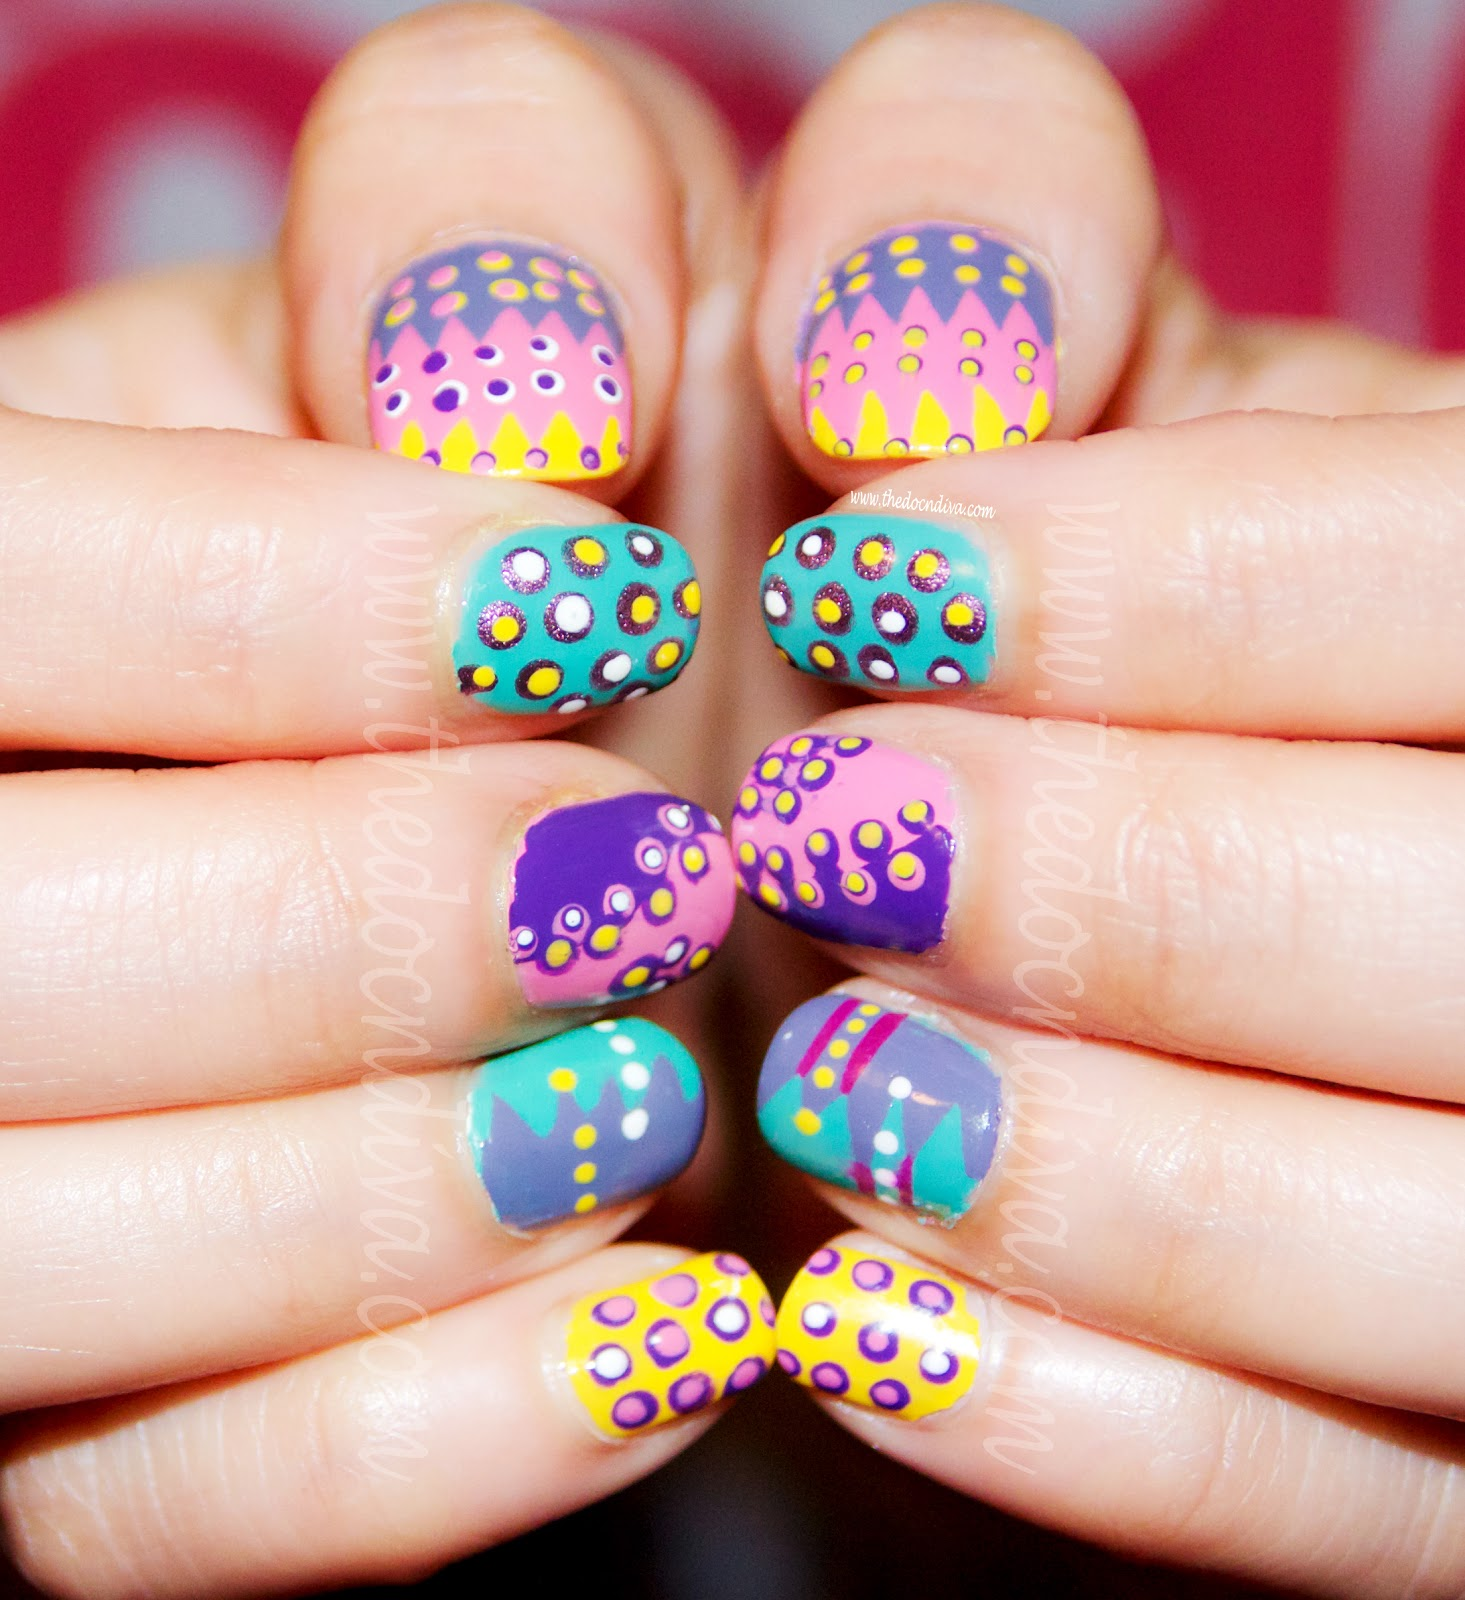 How To Nail Art For Easter And Holi Festivities Thedocndiva